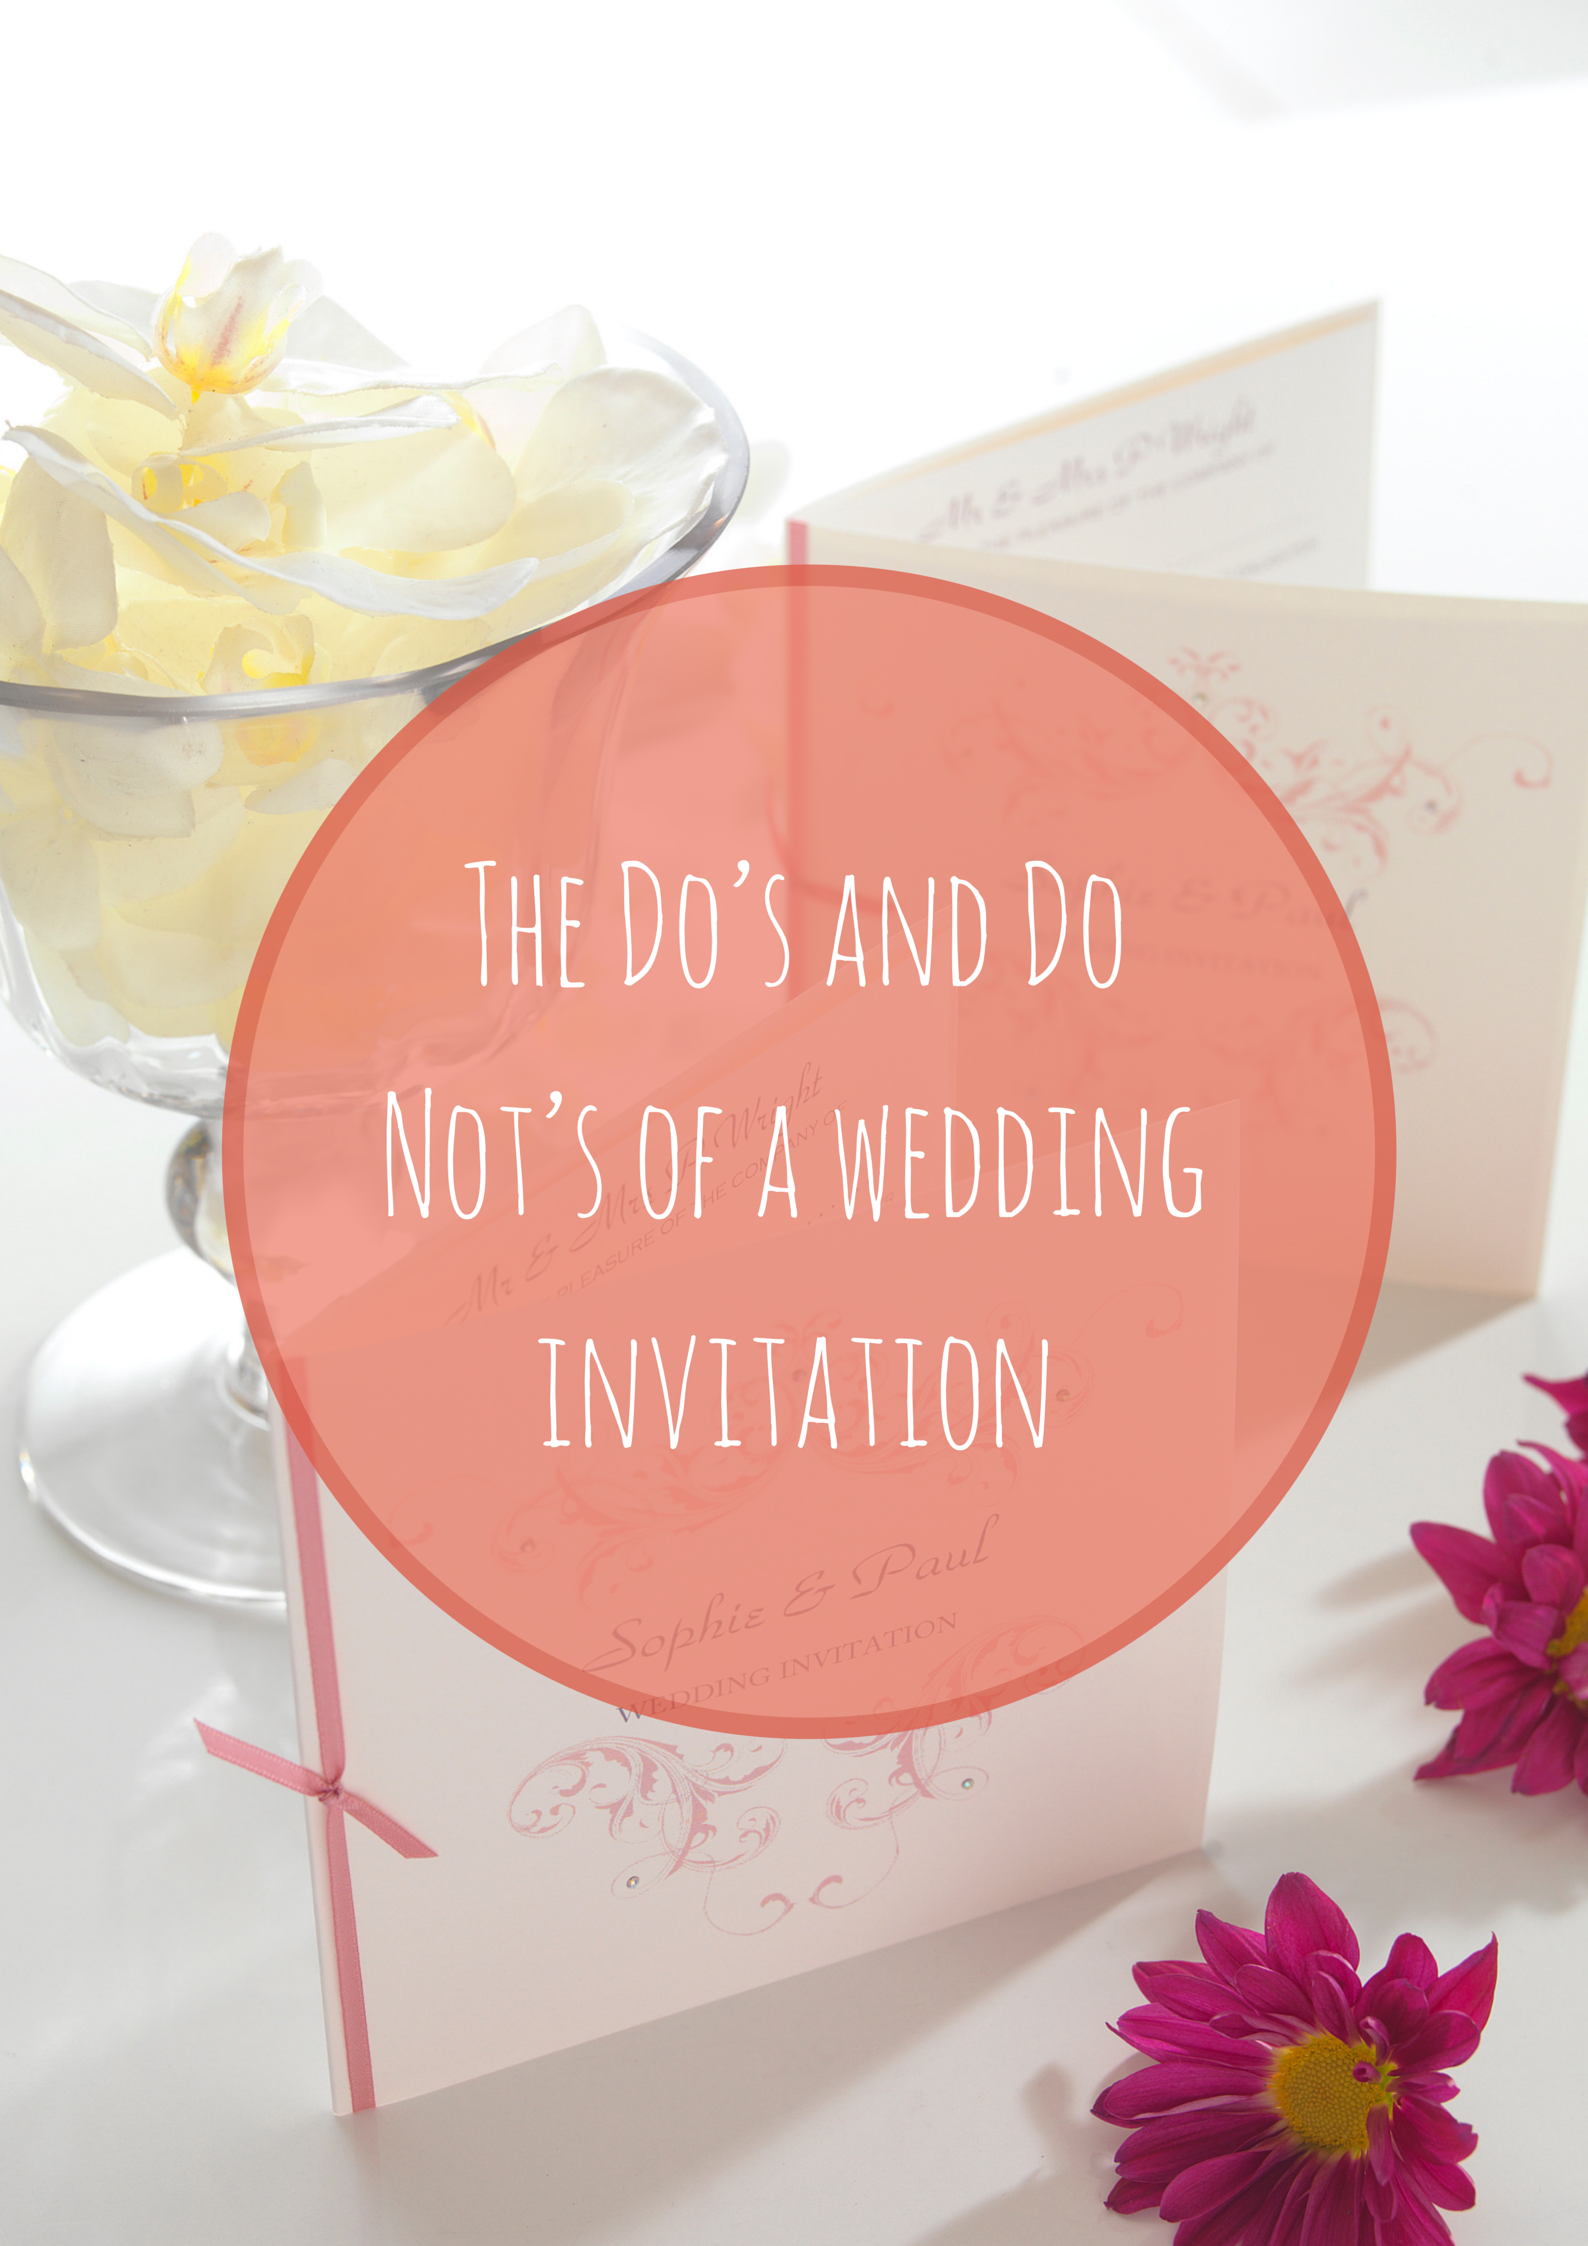 The Do's and Do Not's of a wedding